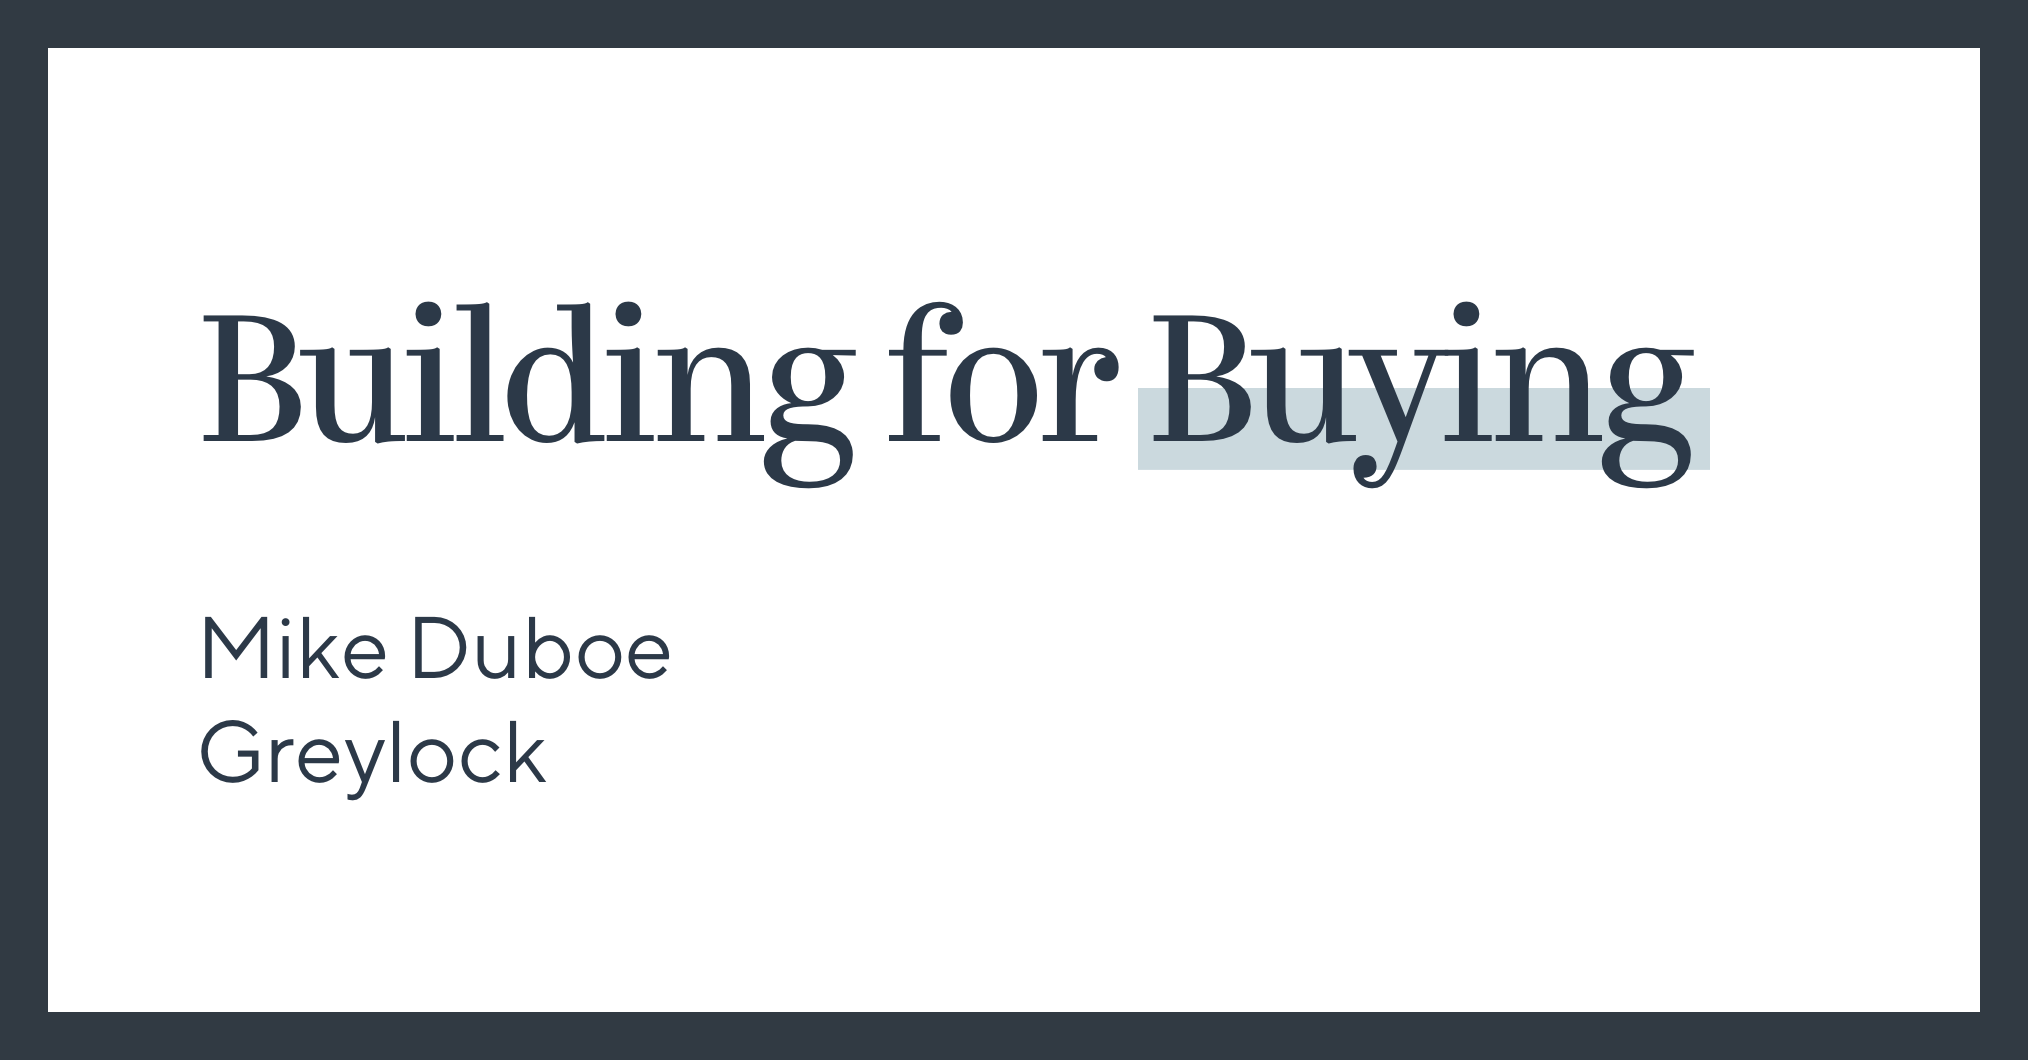 Building for Buying